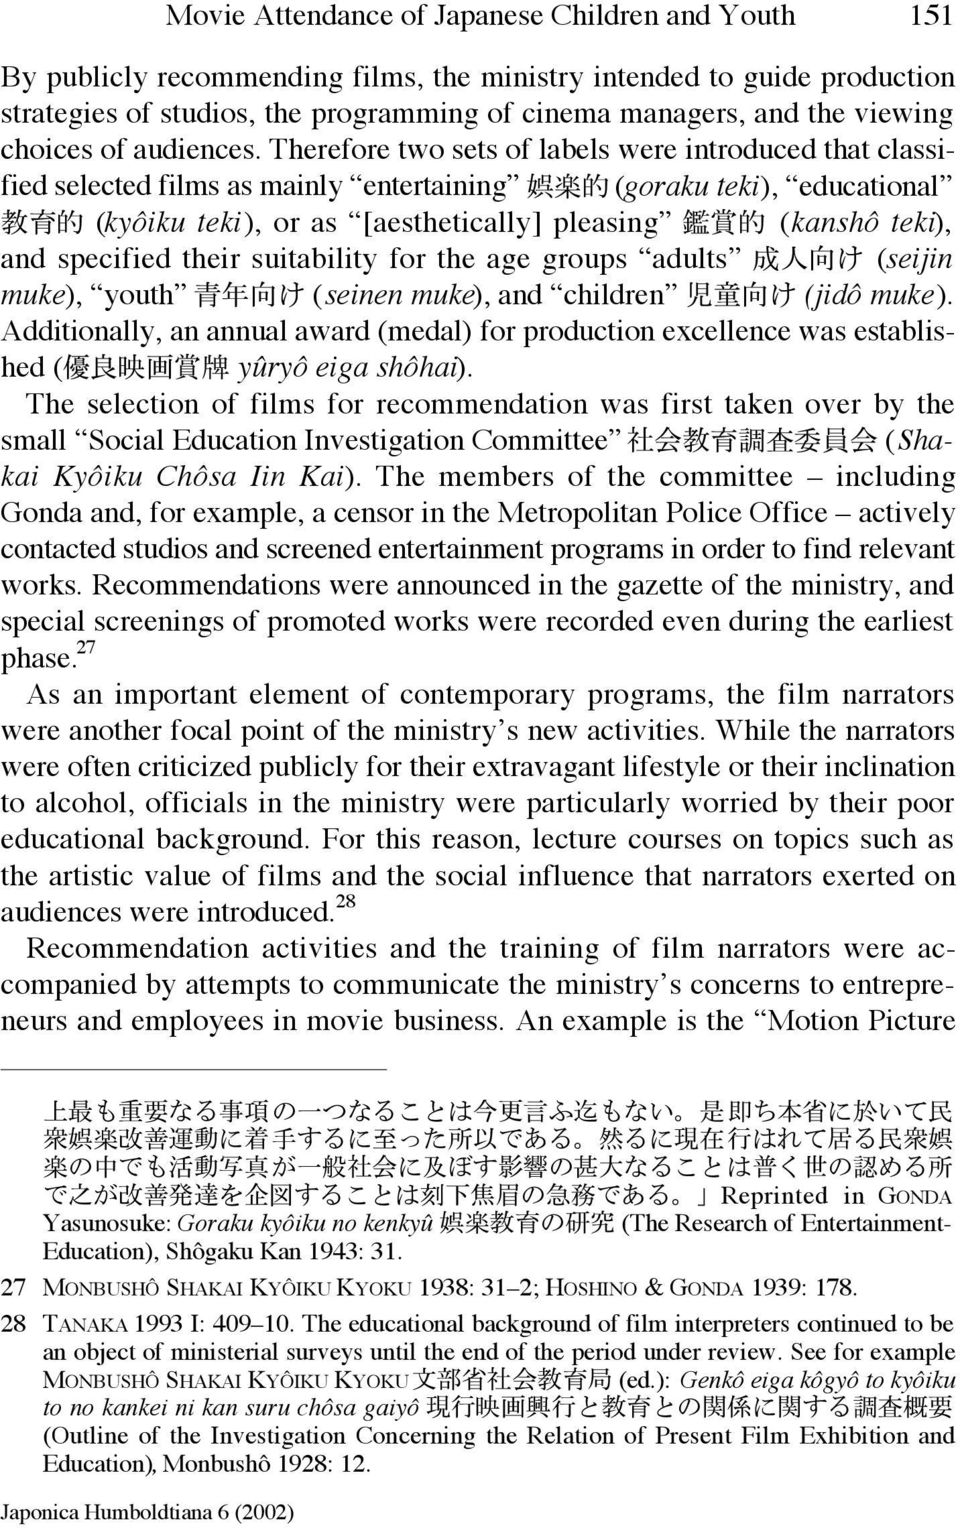 Therefore two sets of labels were introduced that classified selected films as mainly entertaining (goraku teki), educational (kyôiku teki), or as [aesthetically] pleasing (kanshô teki), and